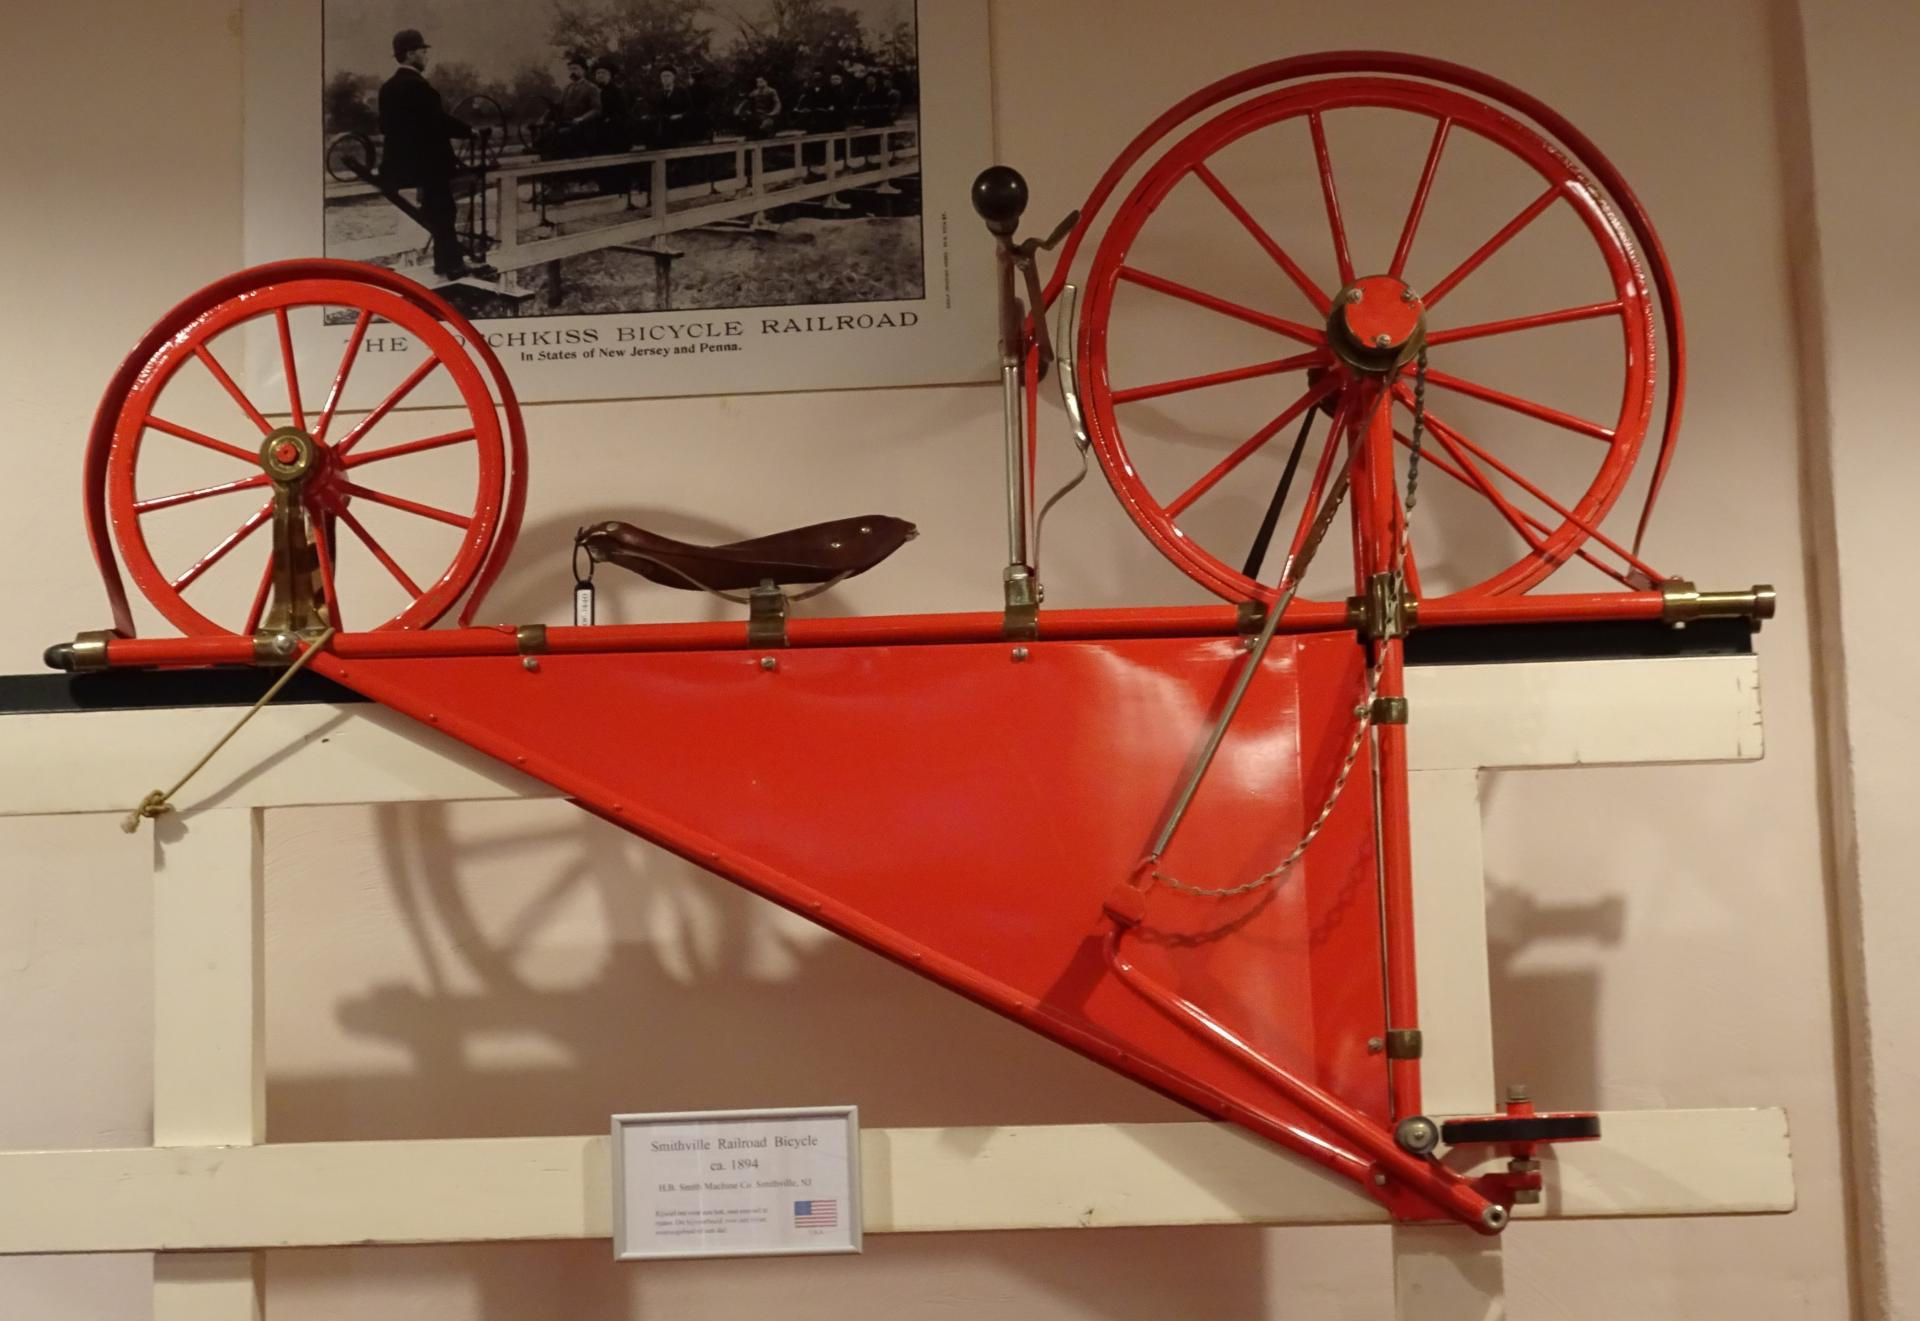 Smithville 1894  Railroad bicycle